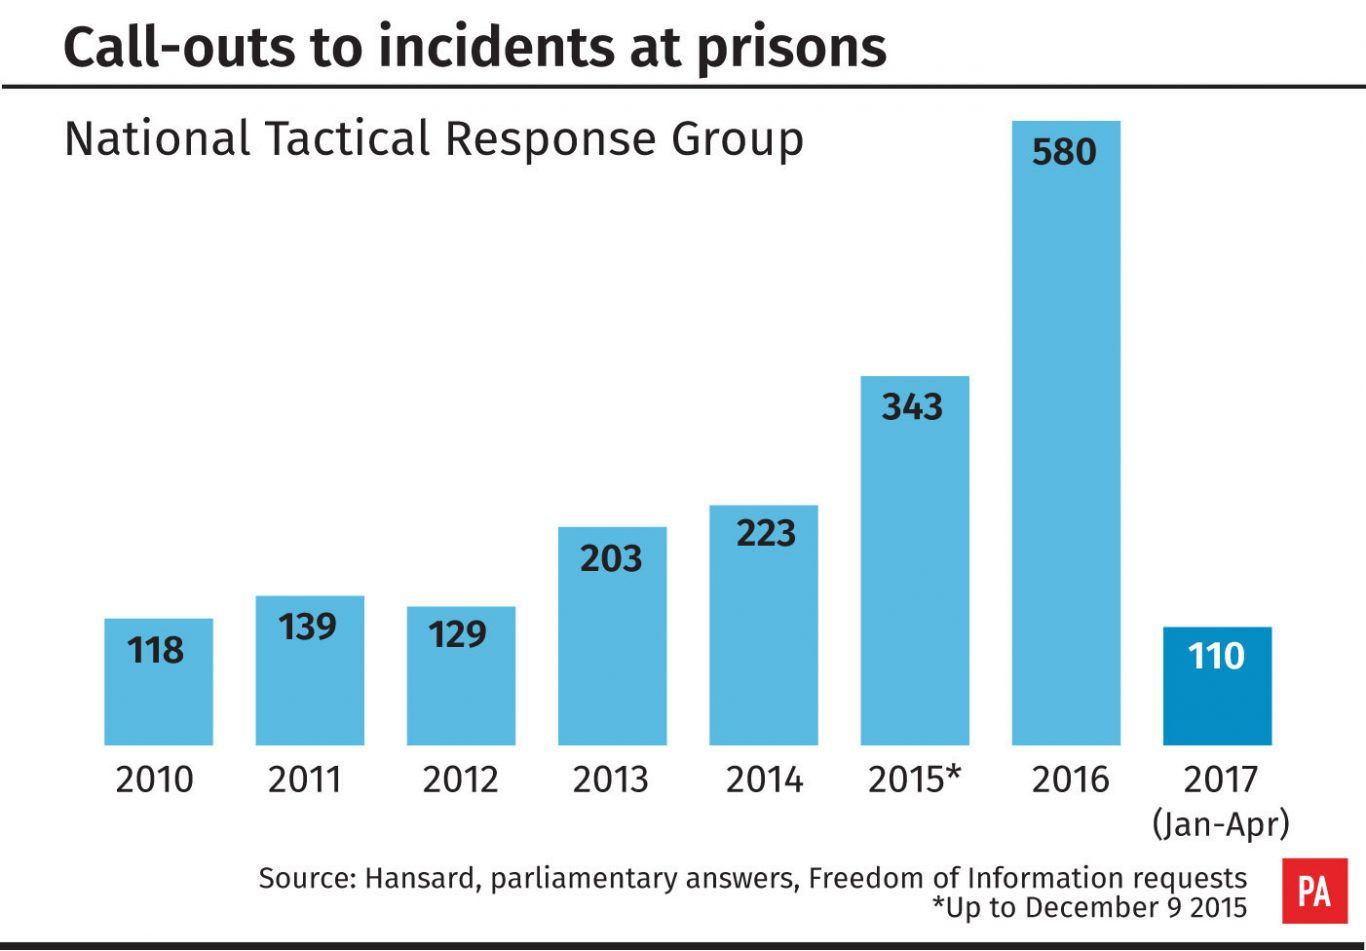 National Tactical Response Group call-outs to incidents at prisons